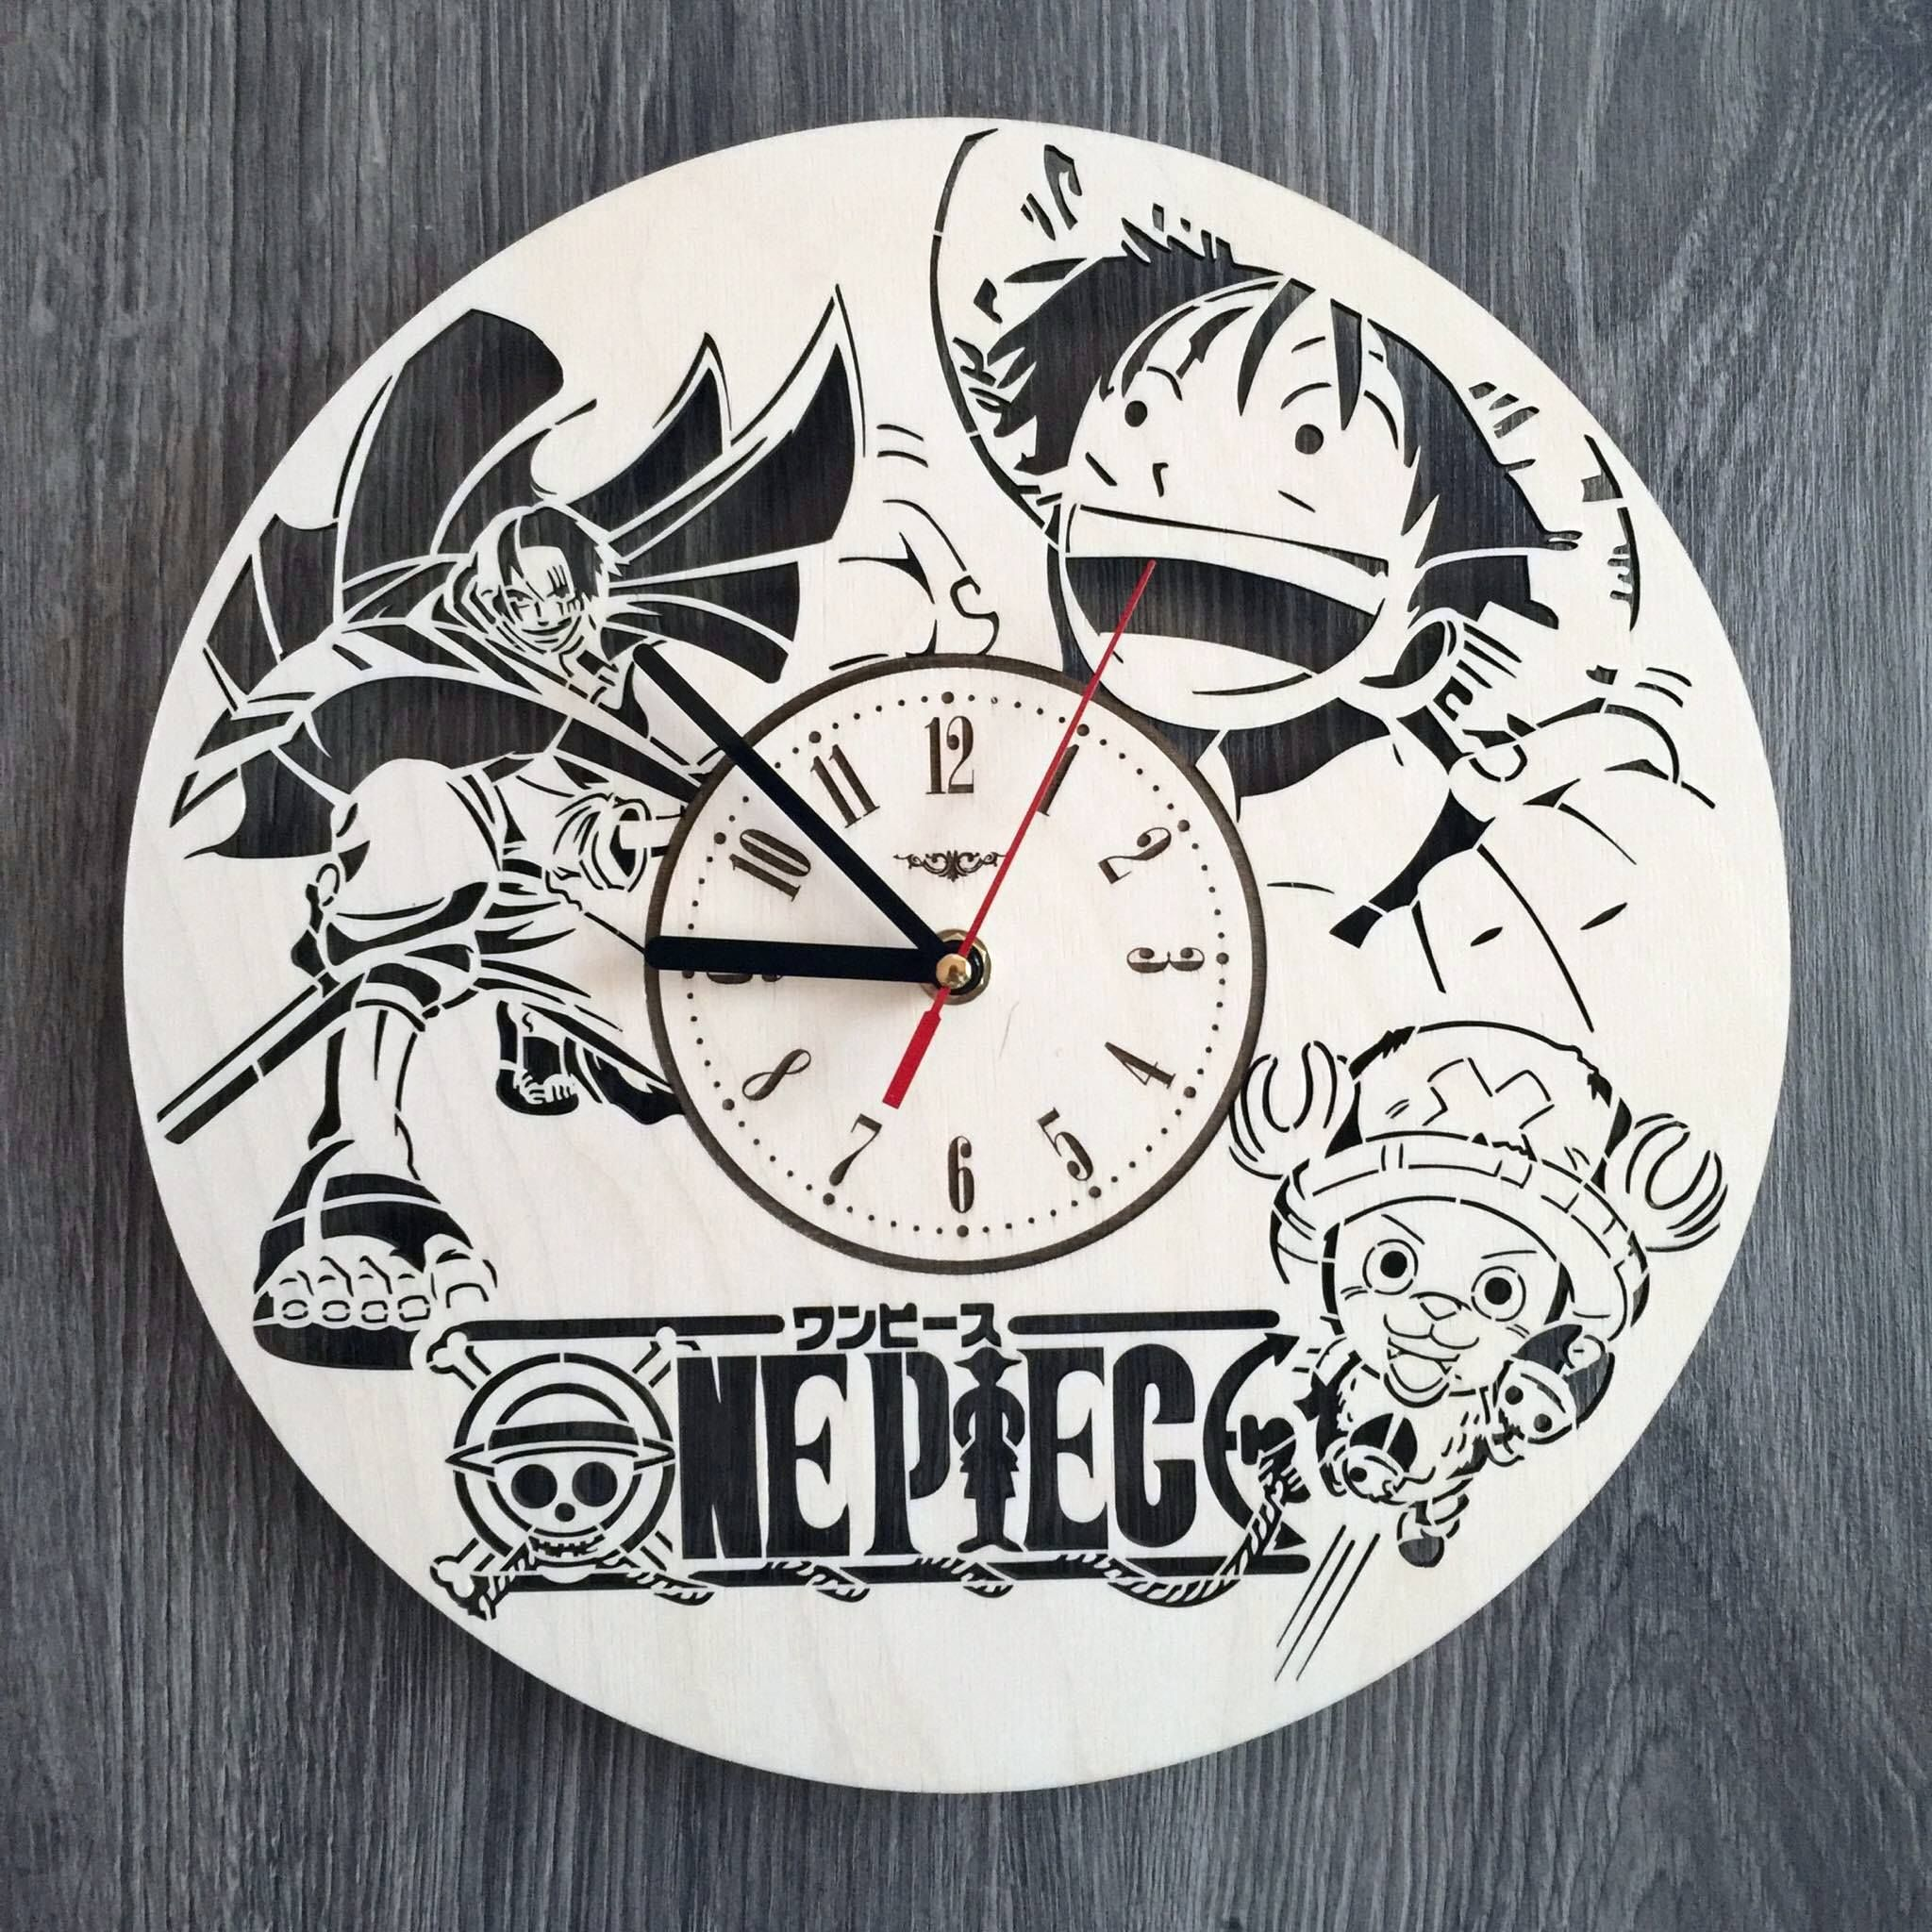 One Piece Wall Wood Clock For More Info And Details Visit Https 7arts Studio Diy Wood Wall Clock Wood Clocks